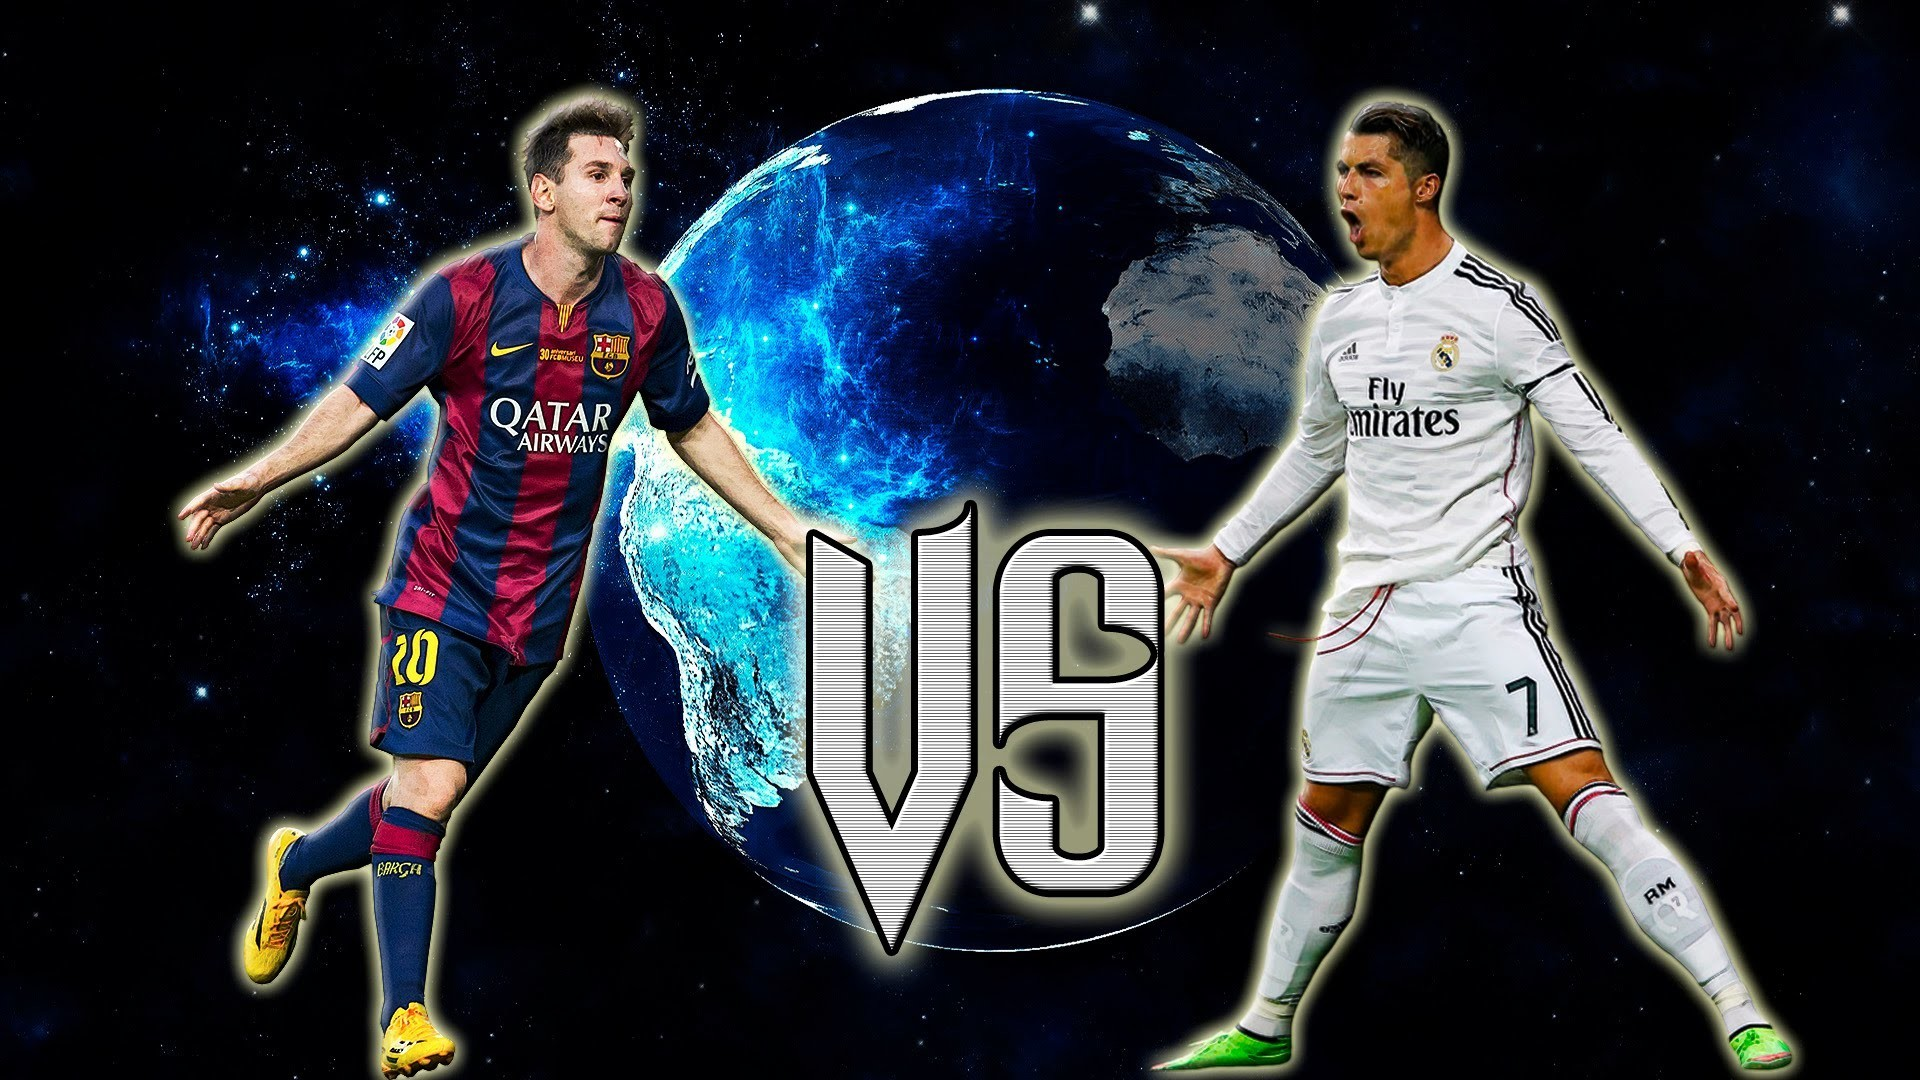 messi vs ronaldo wallpaper 2018 hd 183��